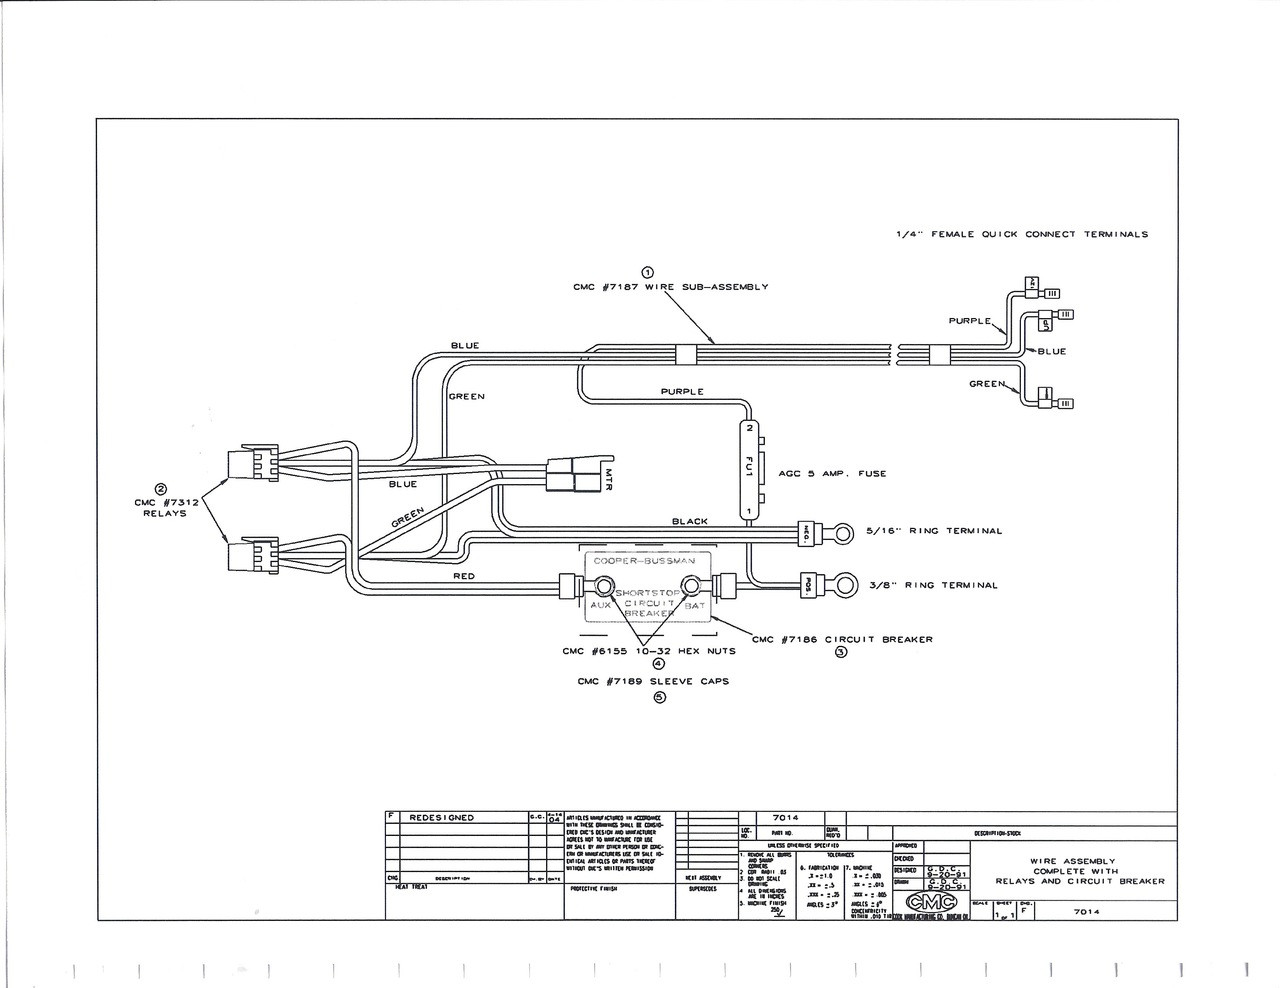 small resolution of cmc 7014 wiring harness for pl 65 pt 35 and pt